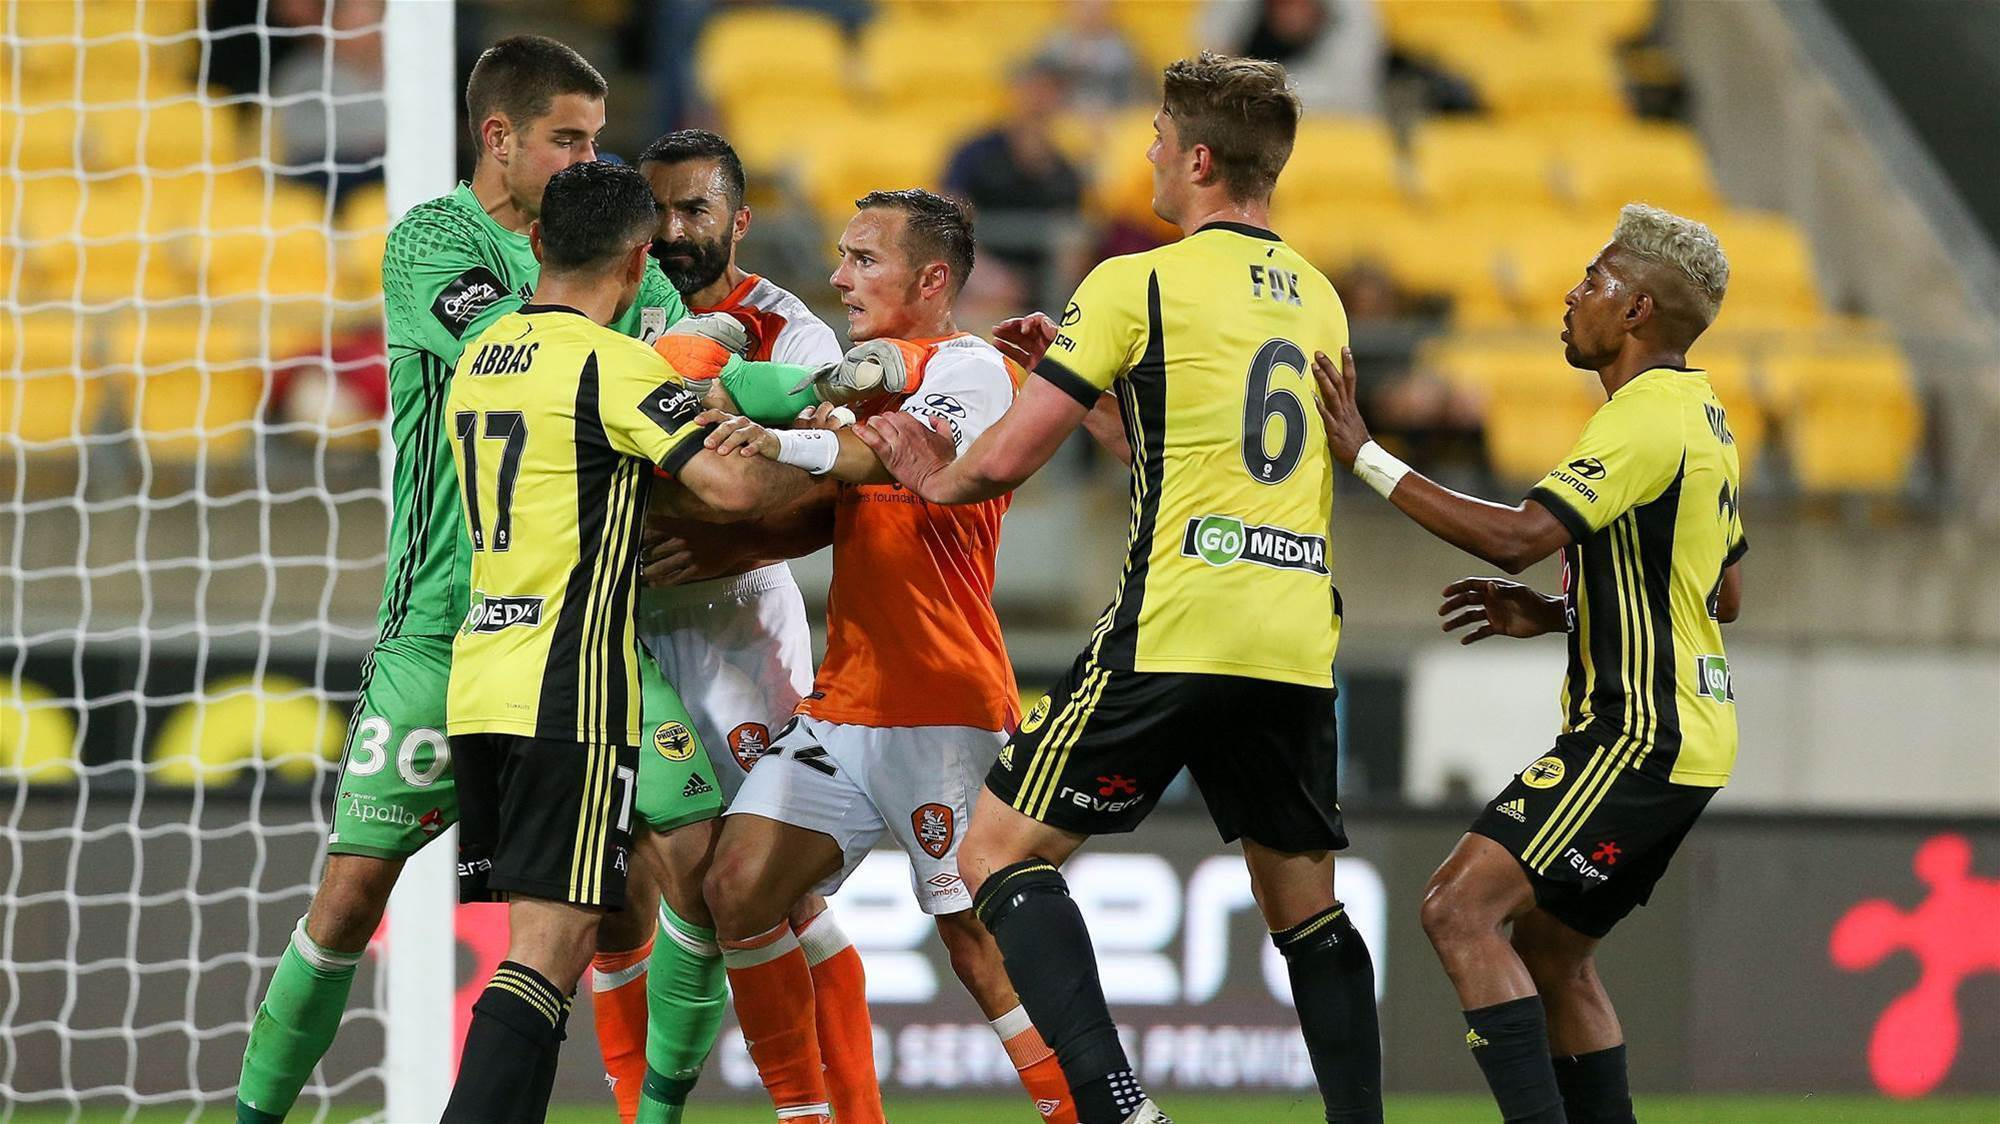 Wellington Phoenix vs Brisbane Roar player ratings